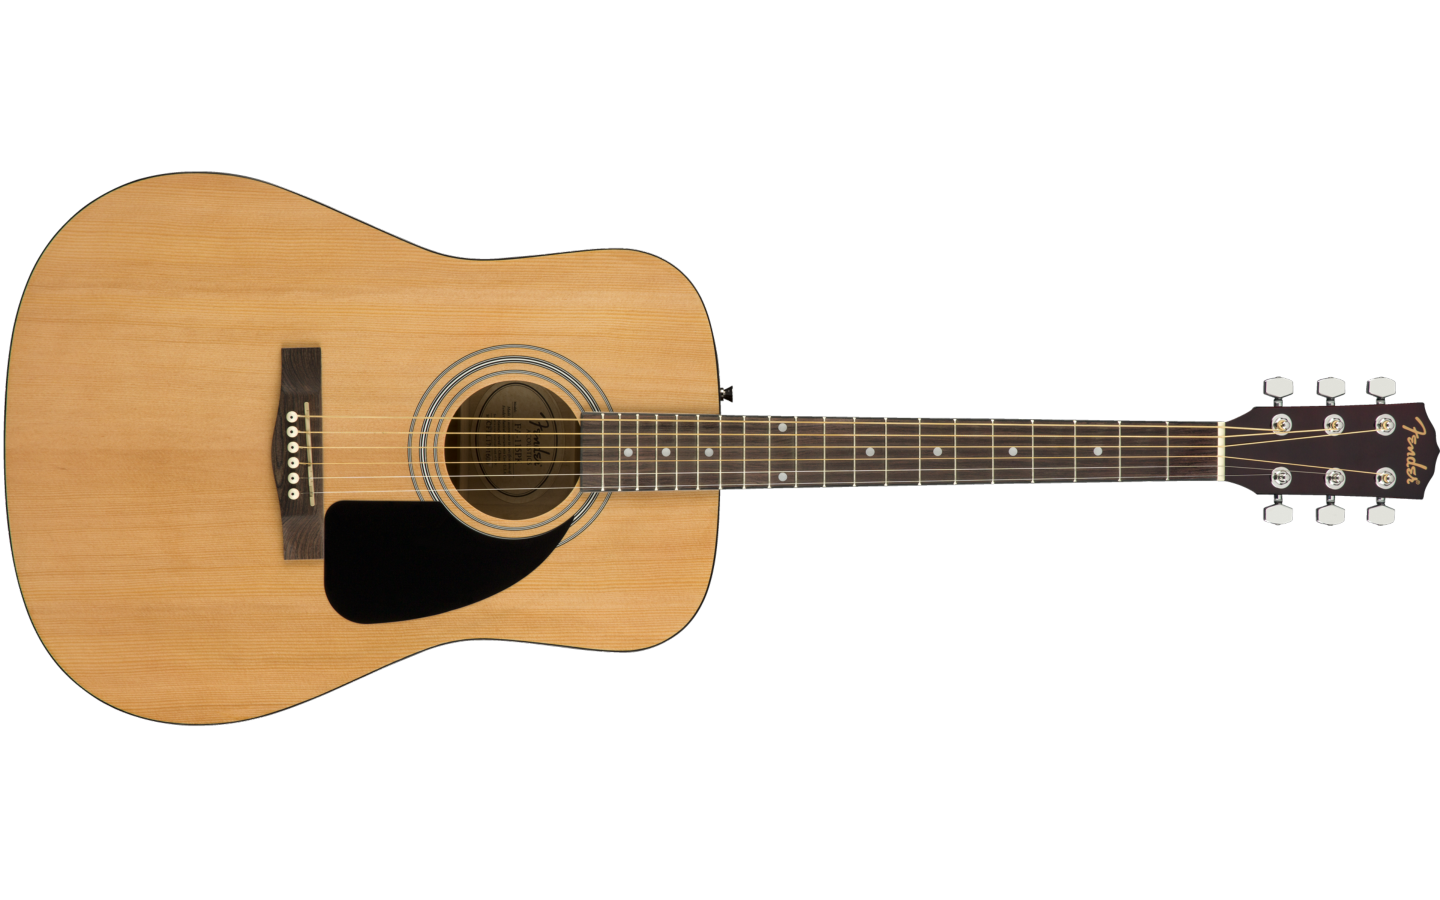 Fender FA-115 Dreadnought Pack NL Wln Fingerboard  GigBag